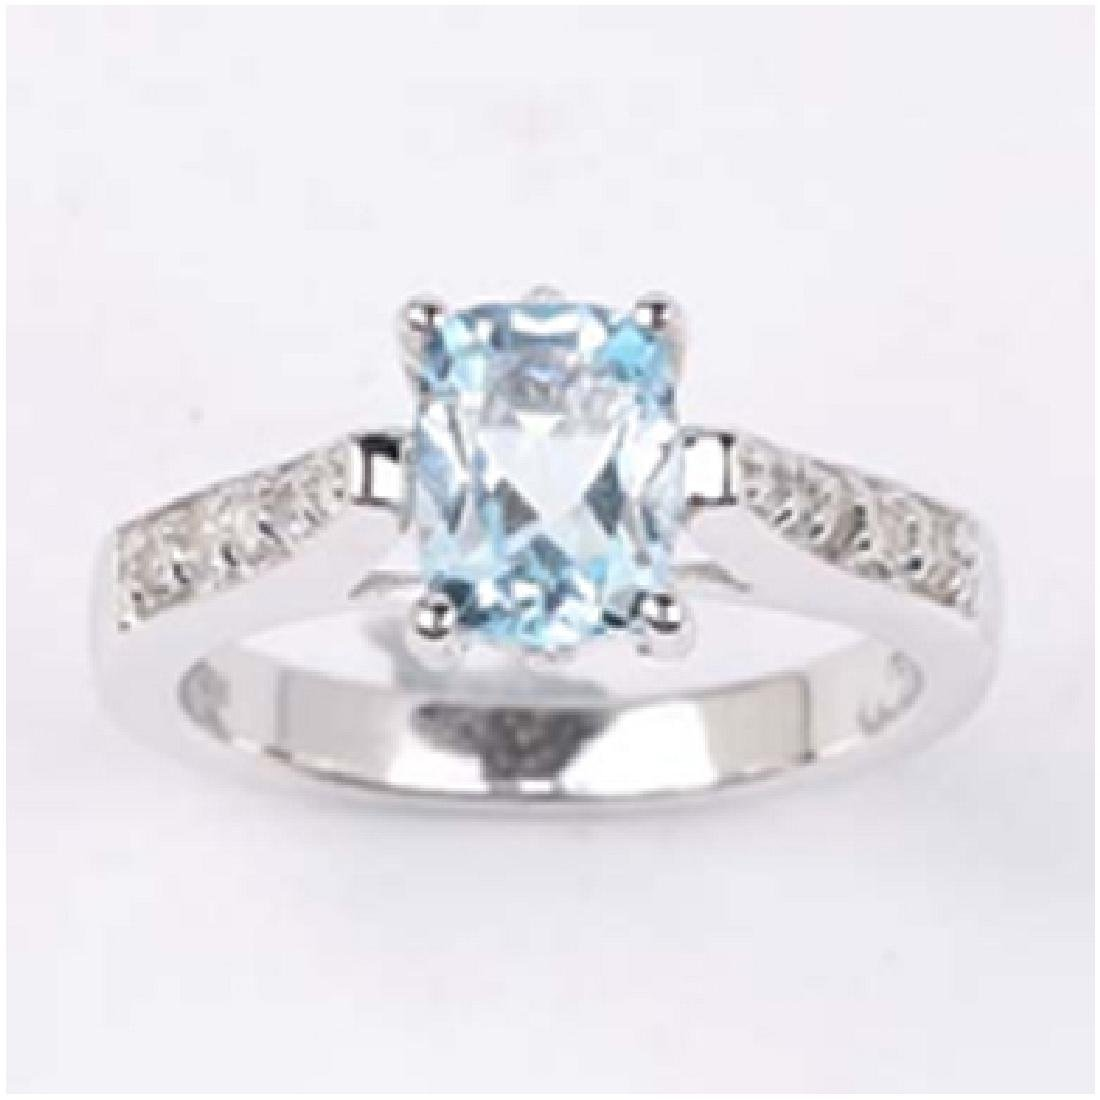 APP: 0.6k 1.56CT Oval Cut Blue And White Topaz 925